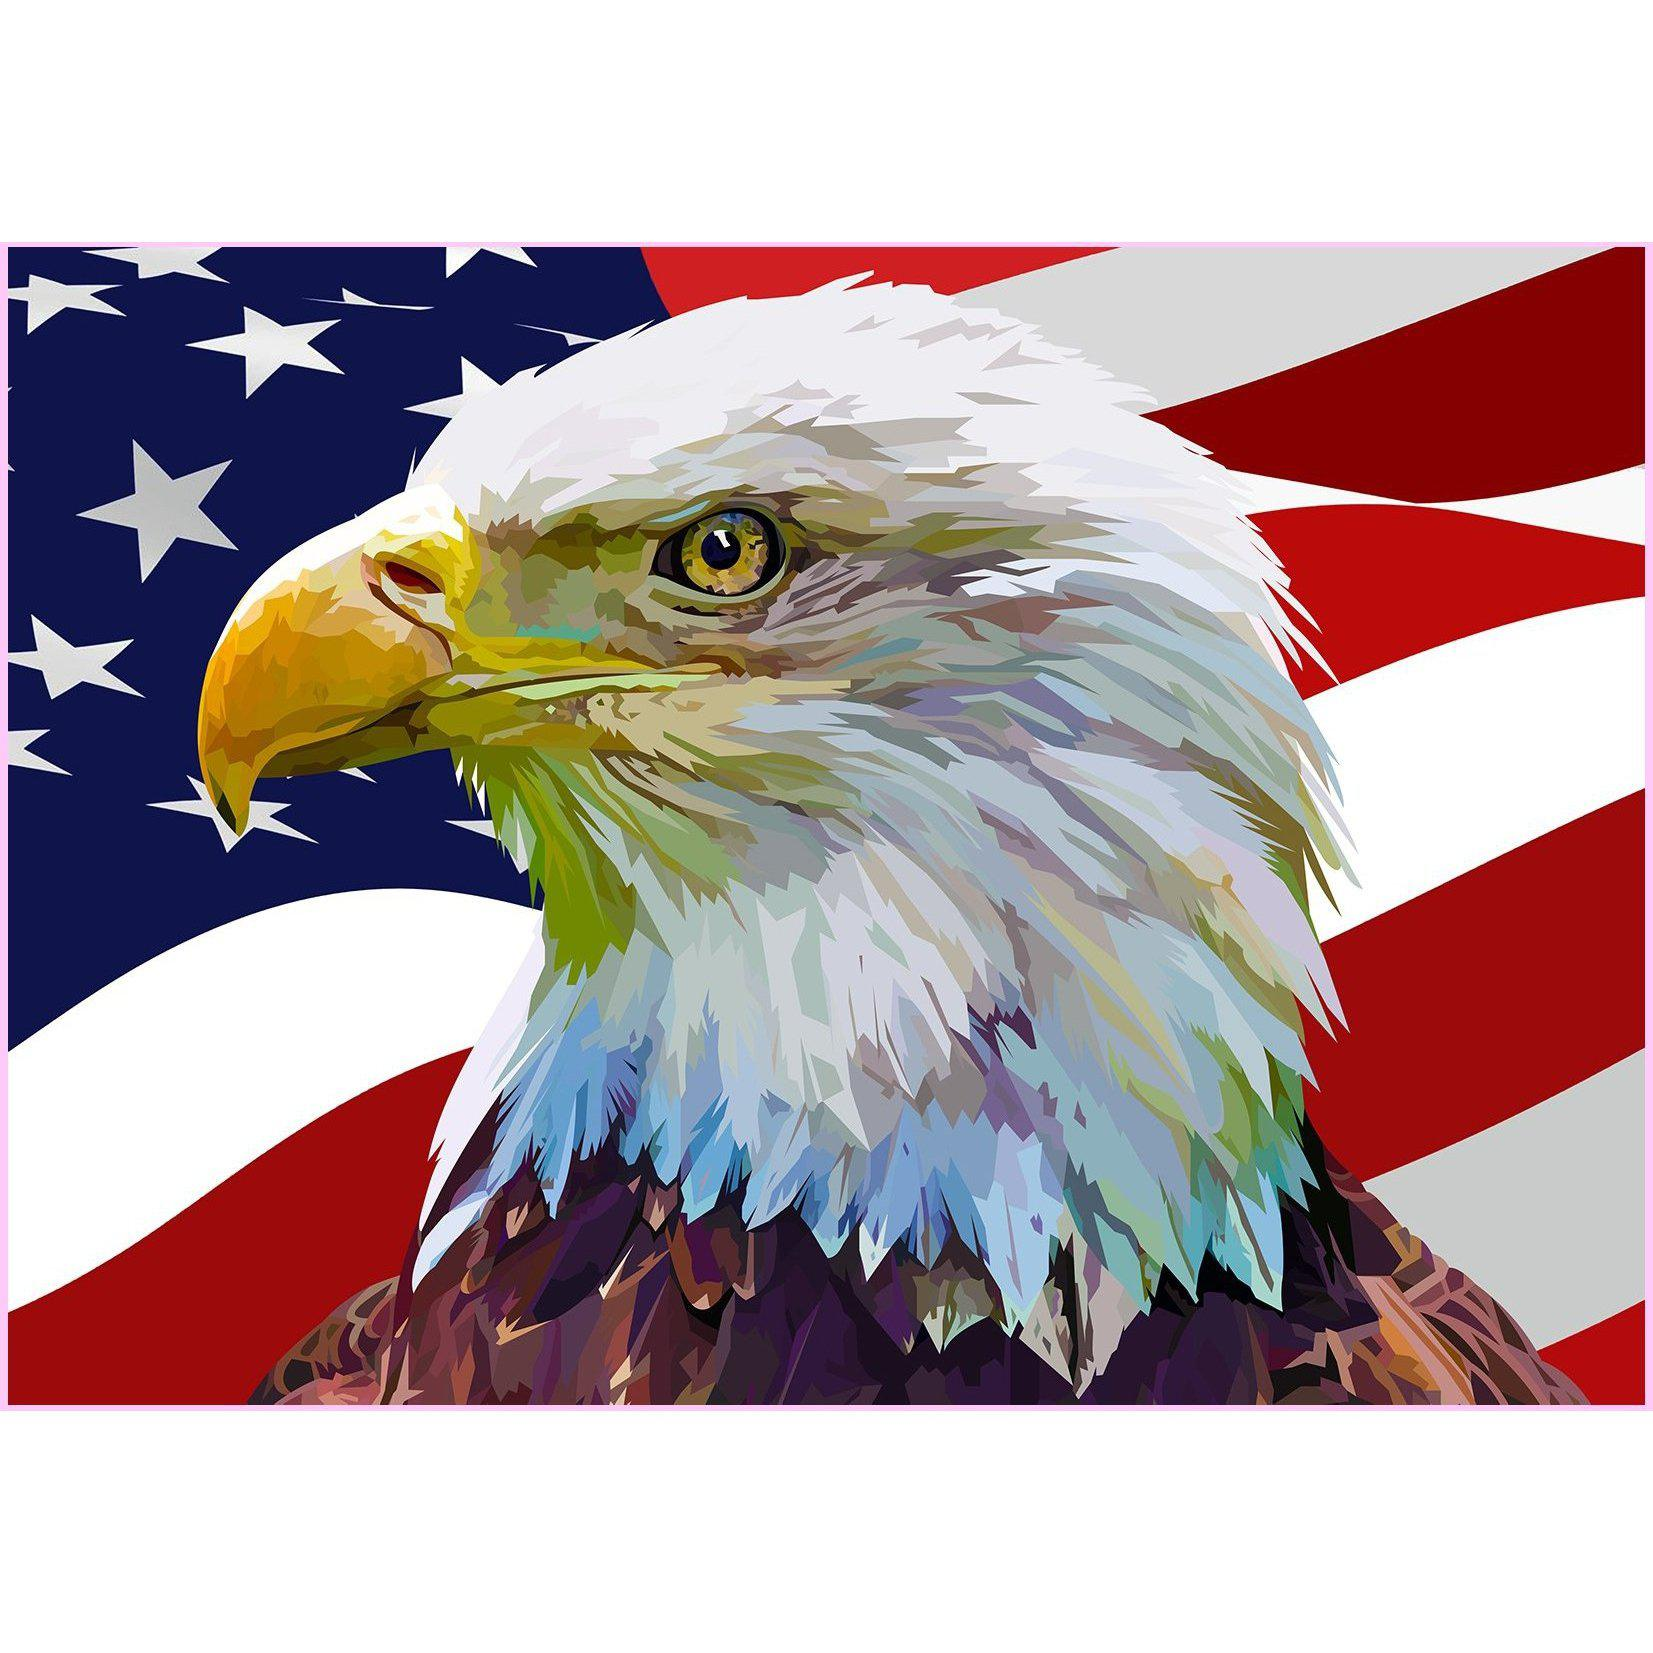 America the Greatest-Diamond Painting Kit USPS-32x45cm (13x18 in)-Round-Heartful Diamonds